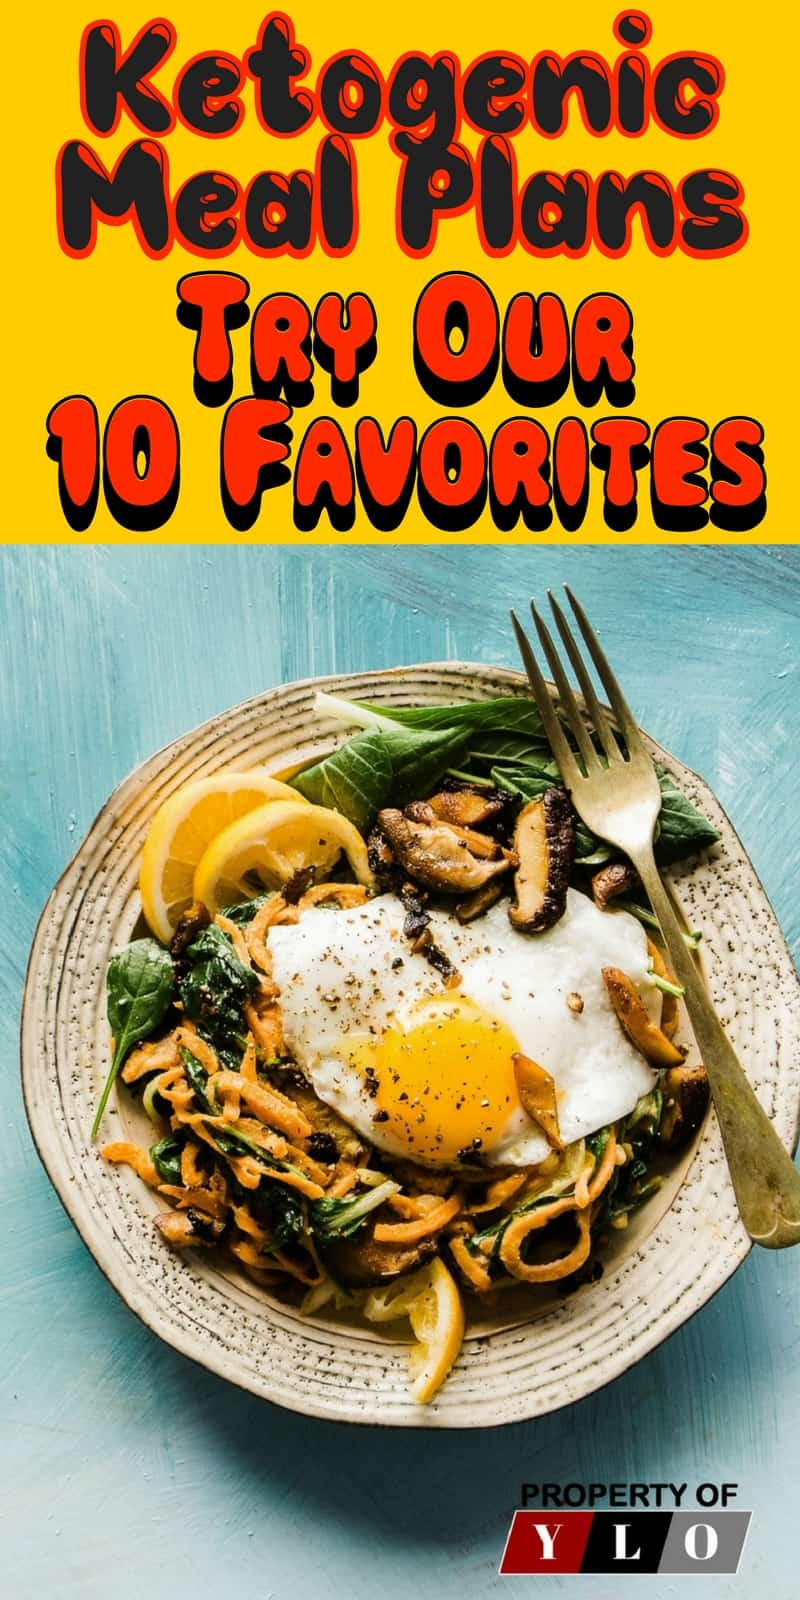 10 Easy Ketogenic Meals and Recipes. 10 Great Ketosis Recipes for Max Burn. These are great for Recipes, Weight Loss Food, Weight Loss Recipes, Healthy Meals, Weight Loss Snack Recipes, Weight Loss Dinner Recipes, Weight Loss Dessert Recipes, Weight Loss Low Carb Recipes, Weight Loss Lunch Recipes, Weight Loss Breakfast Recipes.